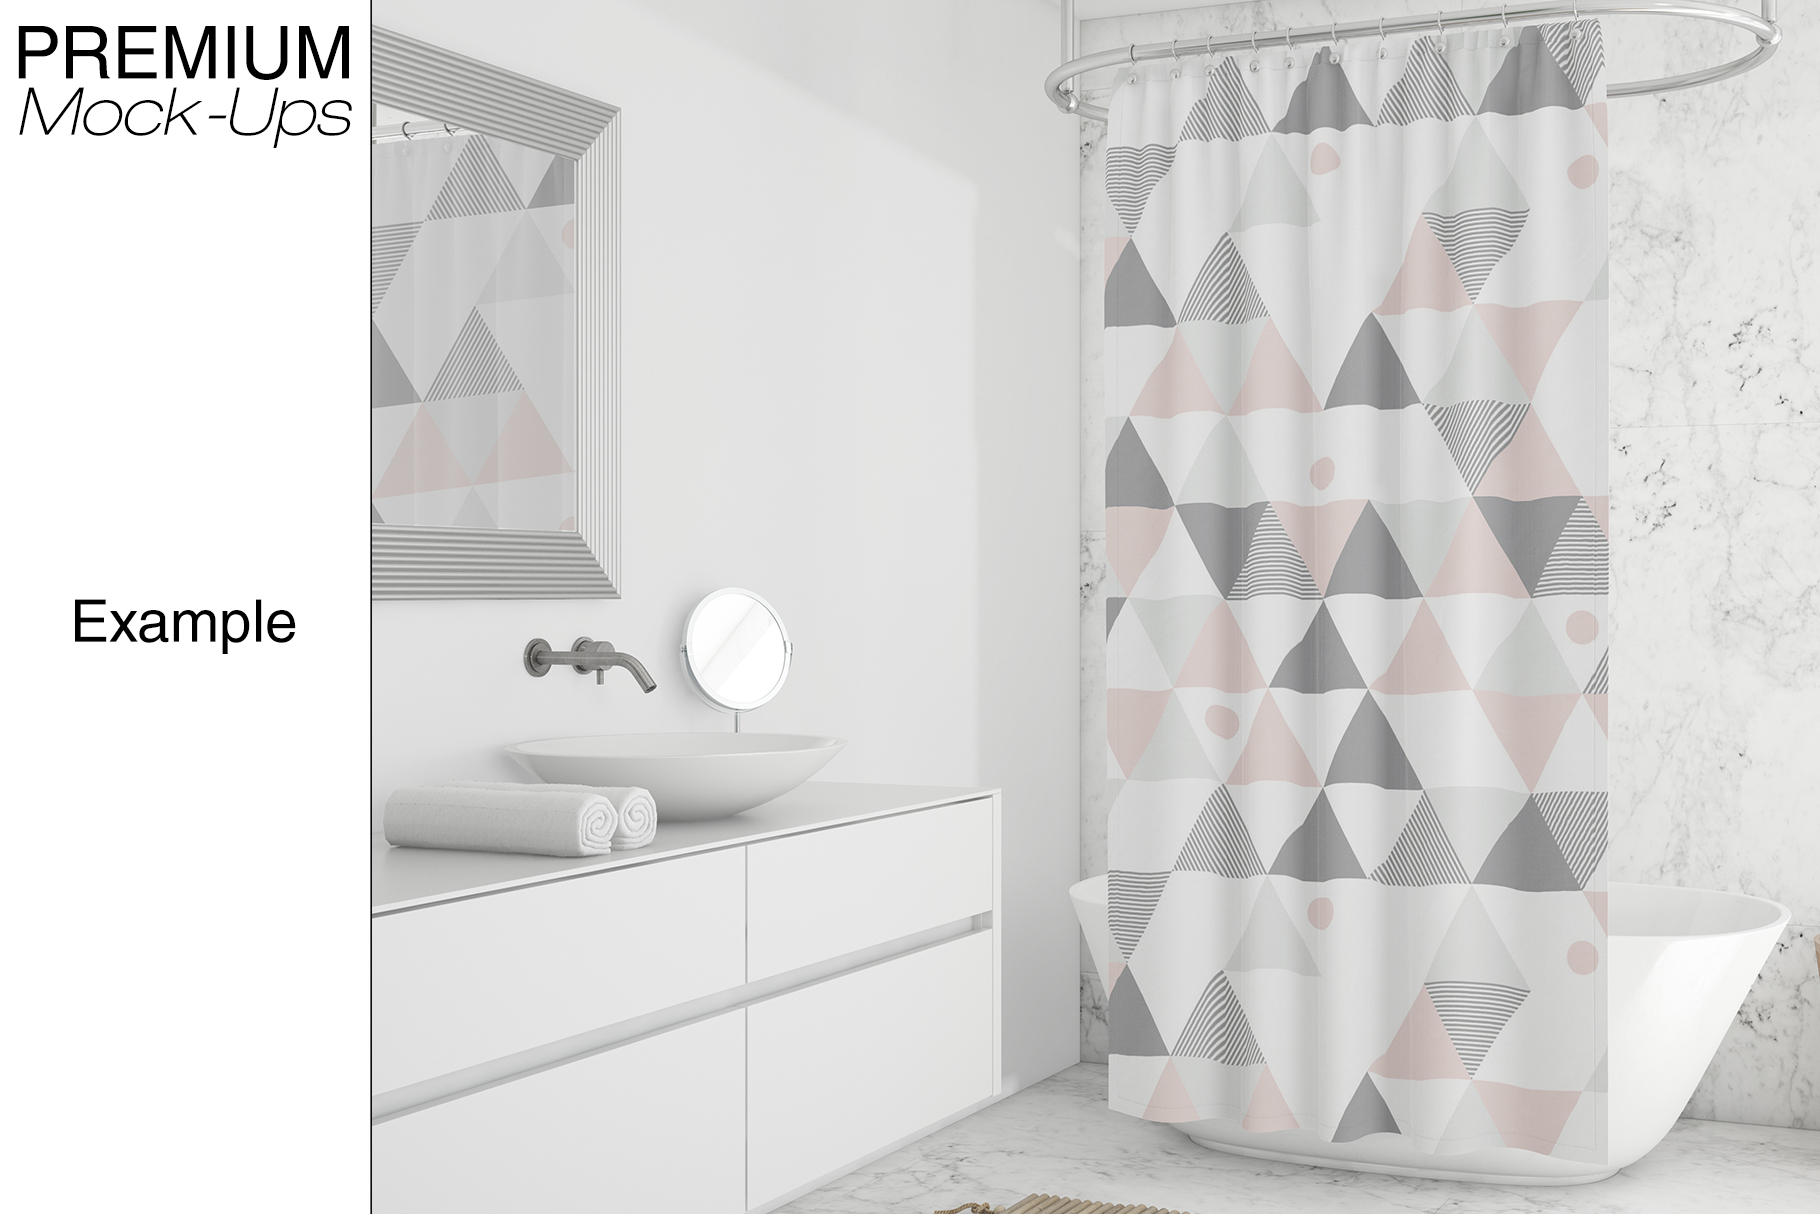 Shower Curtain Mockup Pack example image 8